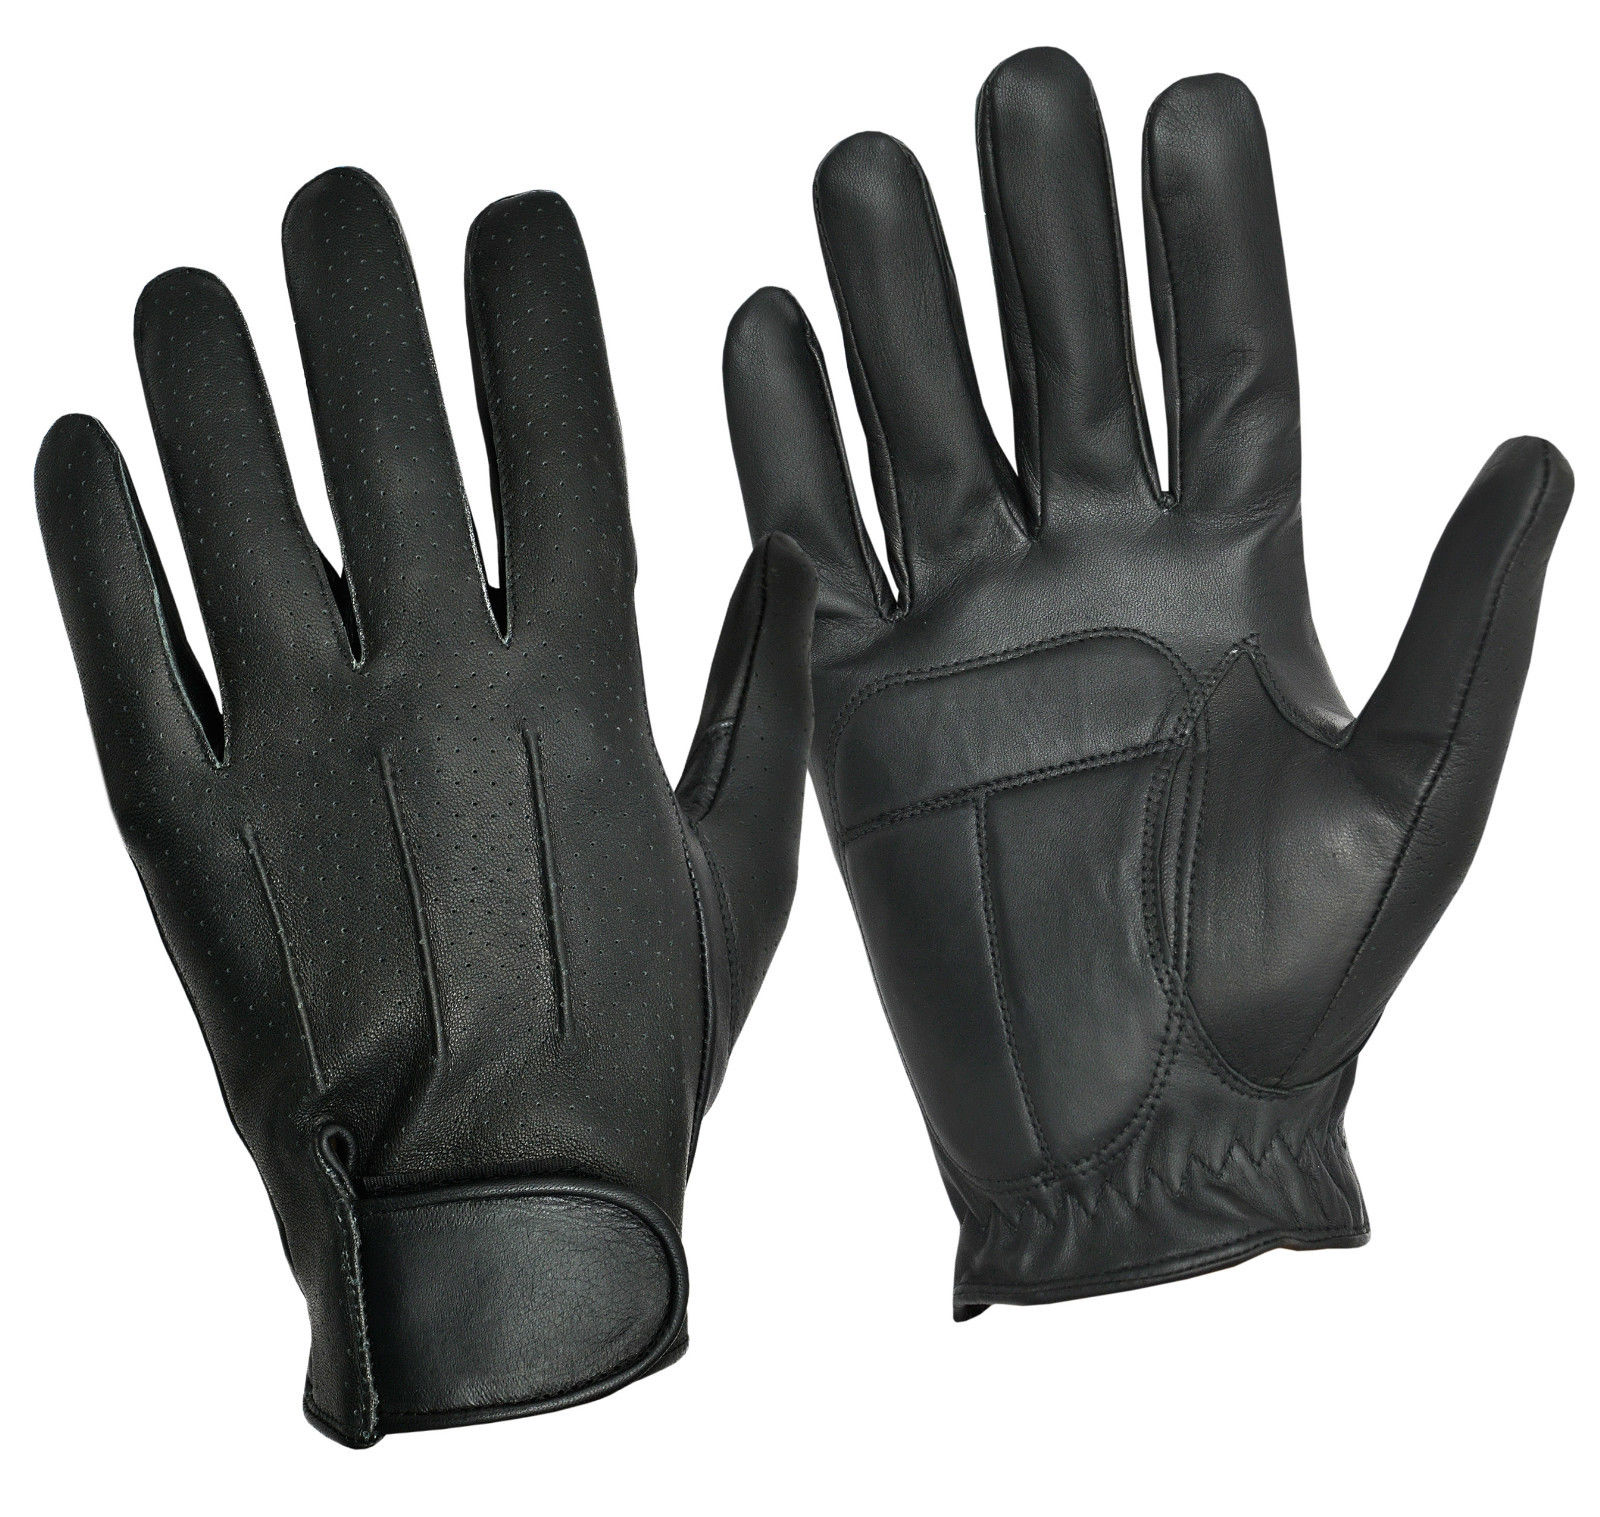 Dam Leather Weight Lifting Gym Gloves Real Leather Women S: Mens Women Driving Fashion Gloves Retro Real Leather Top